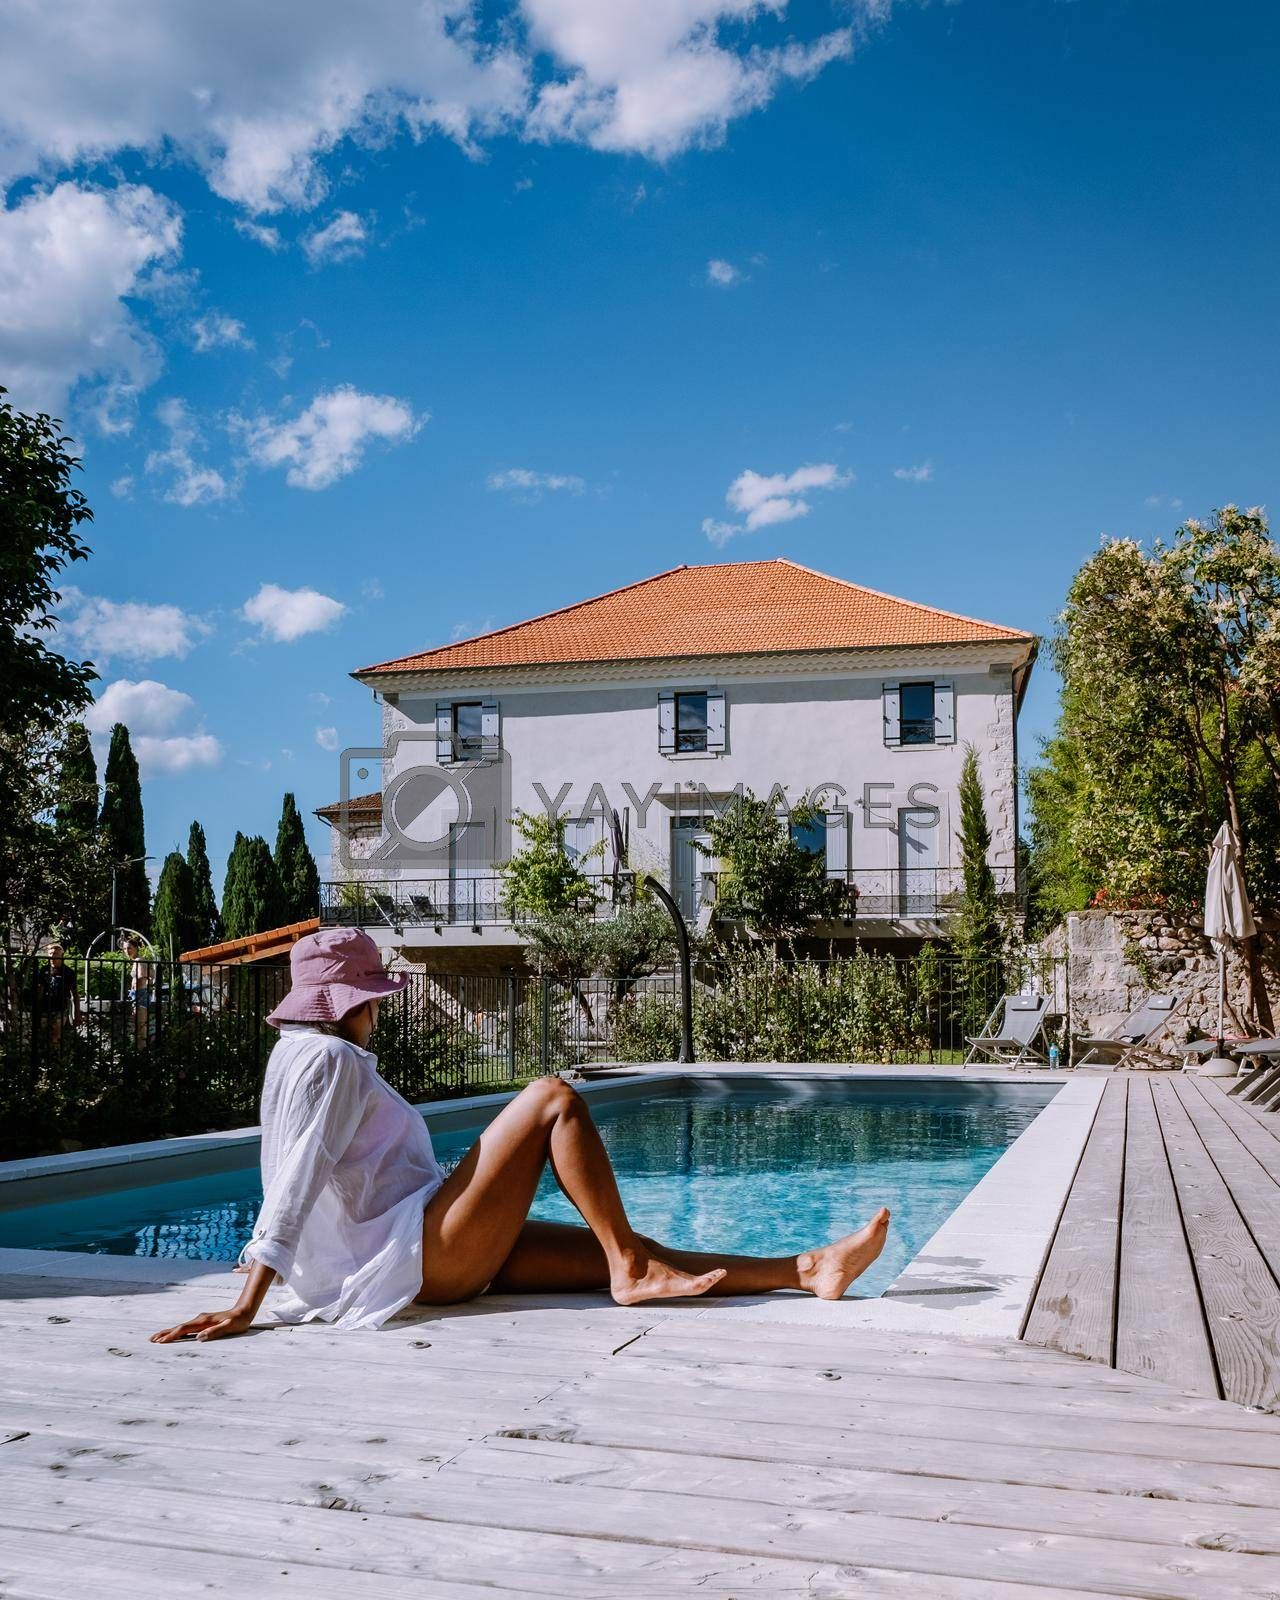 French vacation home with wooden deck and swimming pool in the Ardeche France Europe. woman relaxing by the pool with wooden deck during luxury vacation at an holiday home in South of France